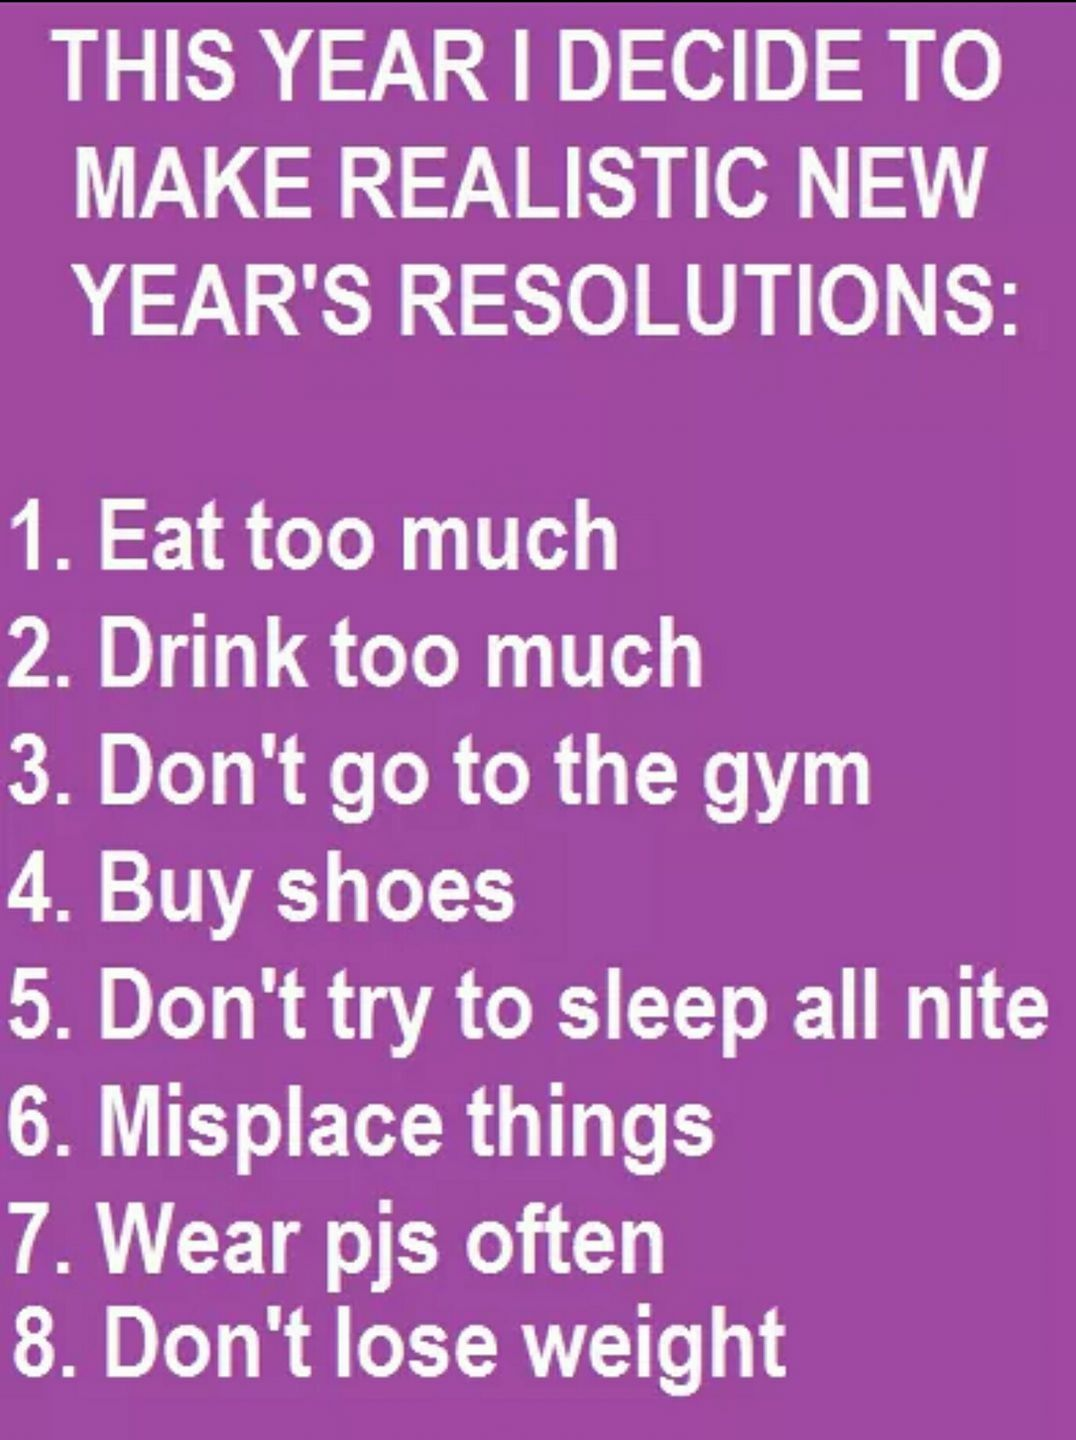 Pin By Aleah Gunter On Humour New Years Resolution Funny Funny New Year Resolutions Funny